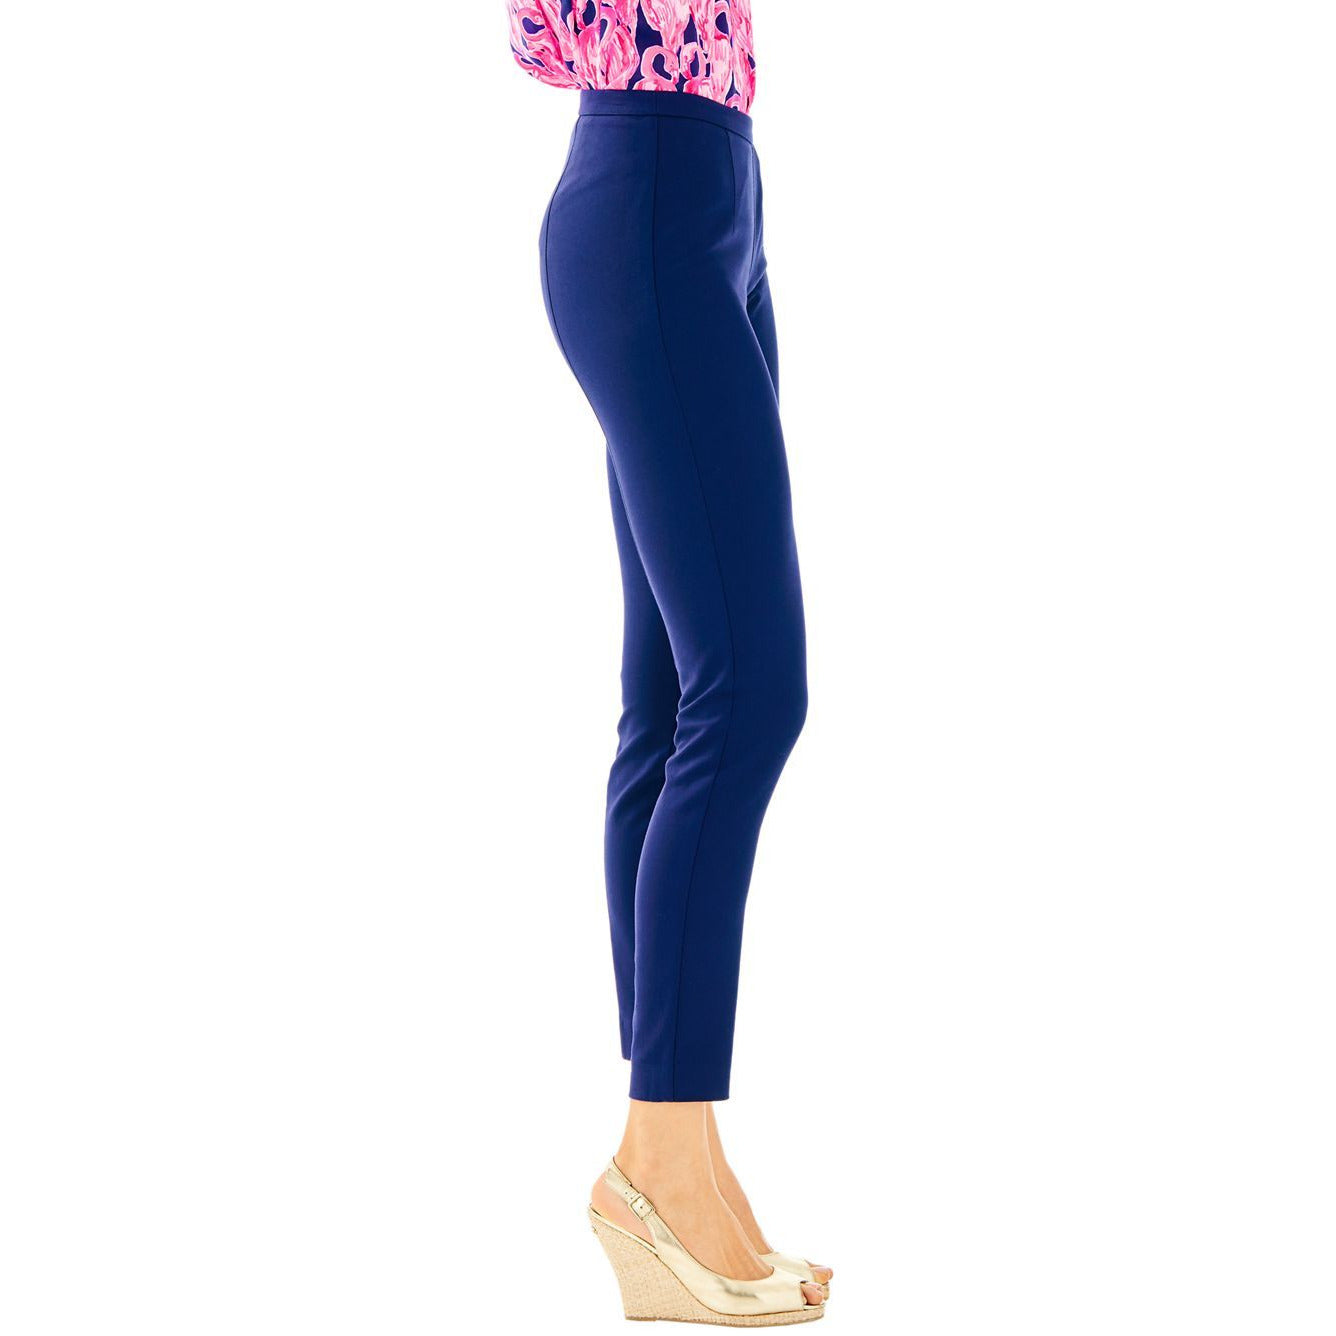 "Lilly Pulitzer 30"" Alessia Stretch Dinner Pant Midnight Navy"